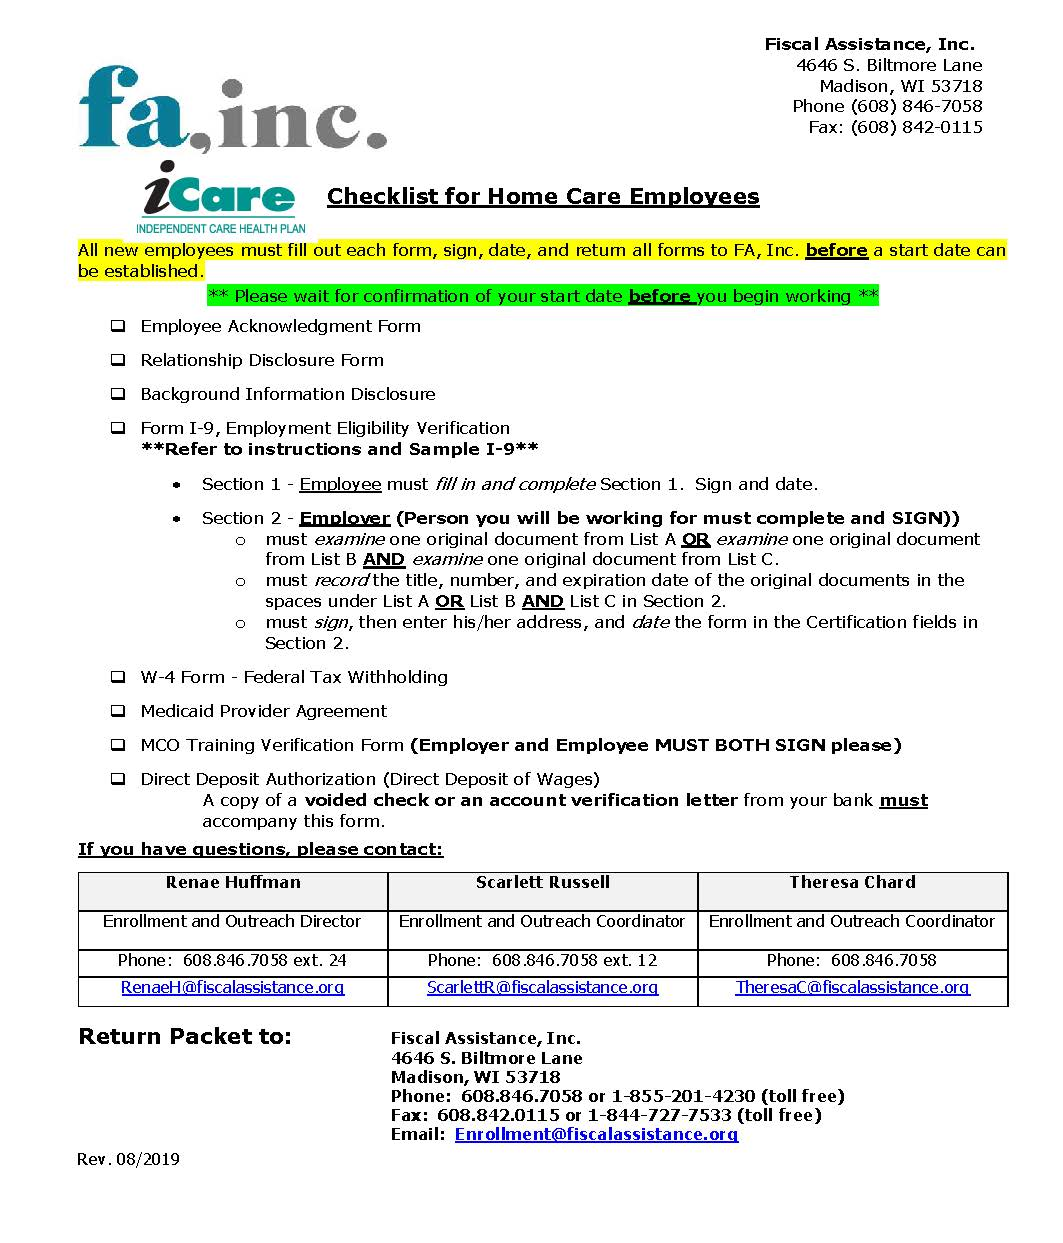 iCare form